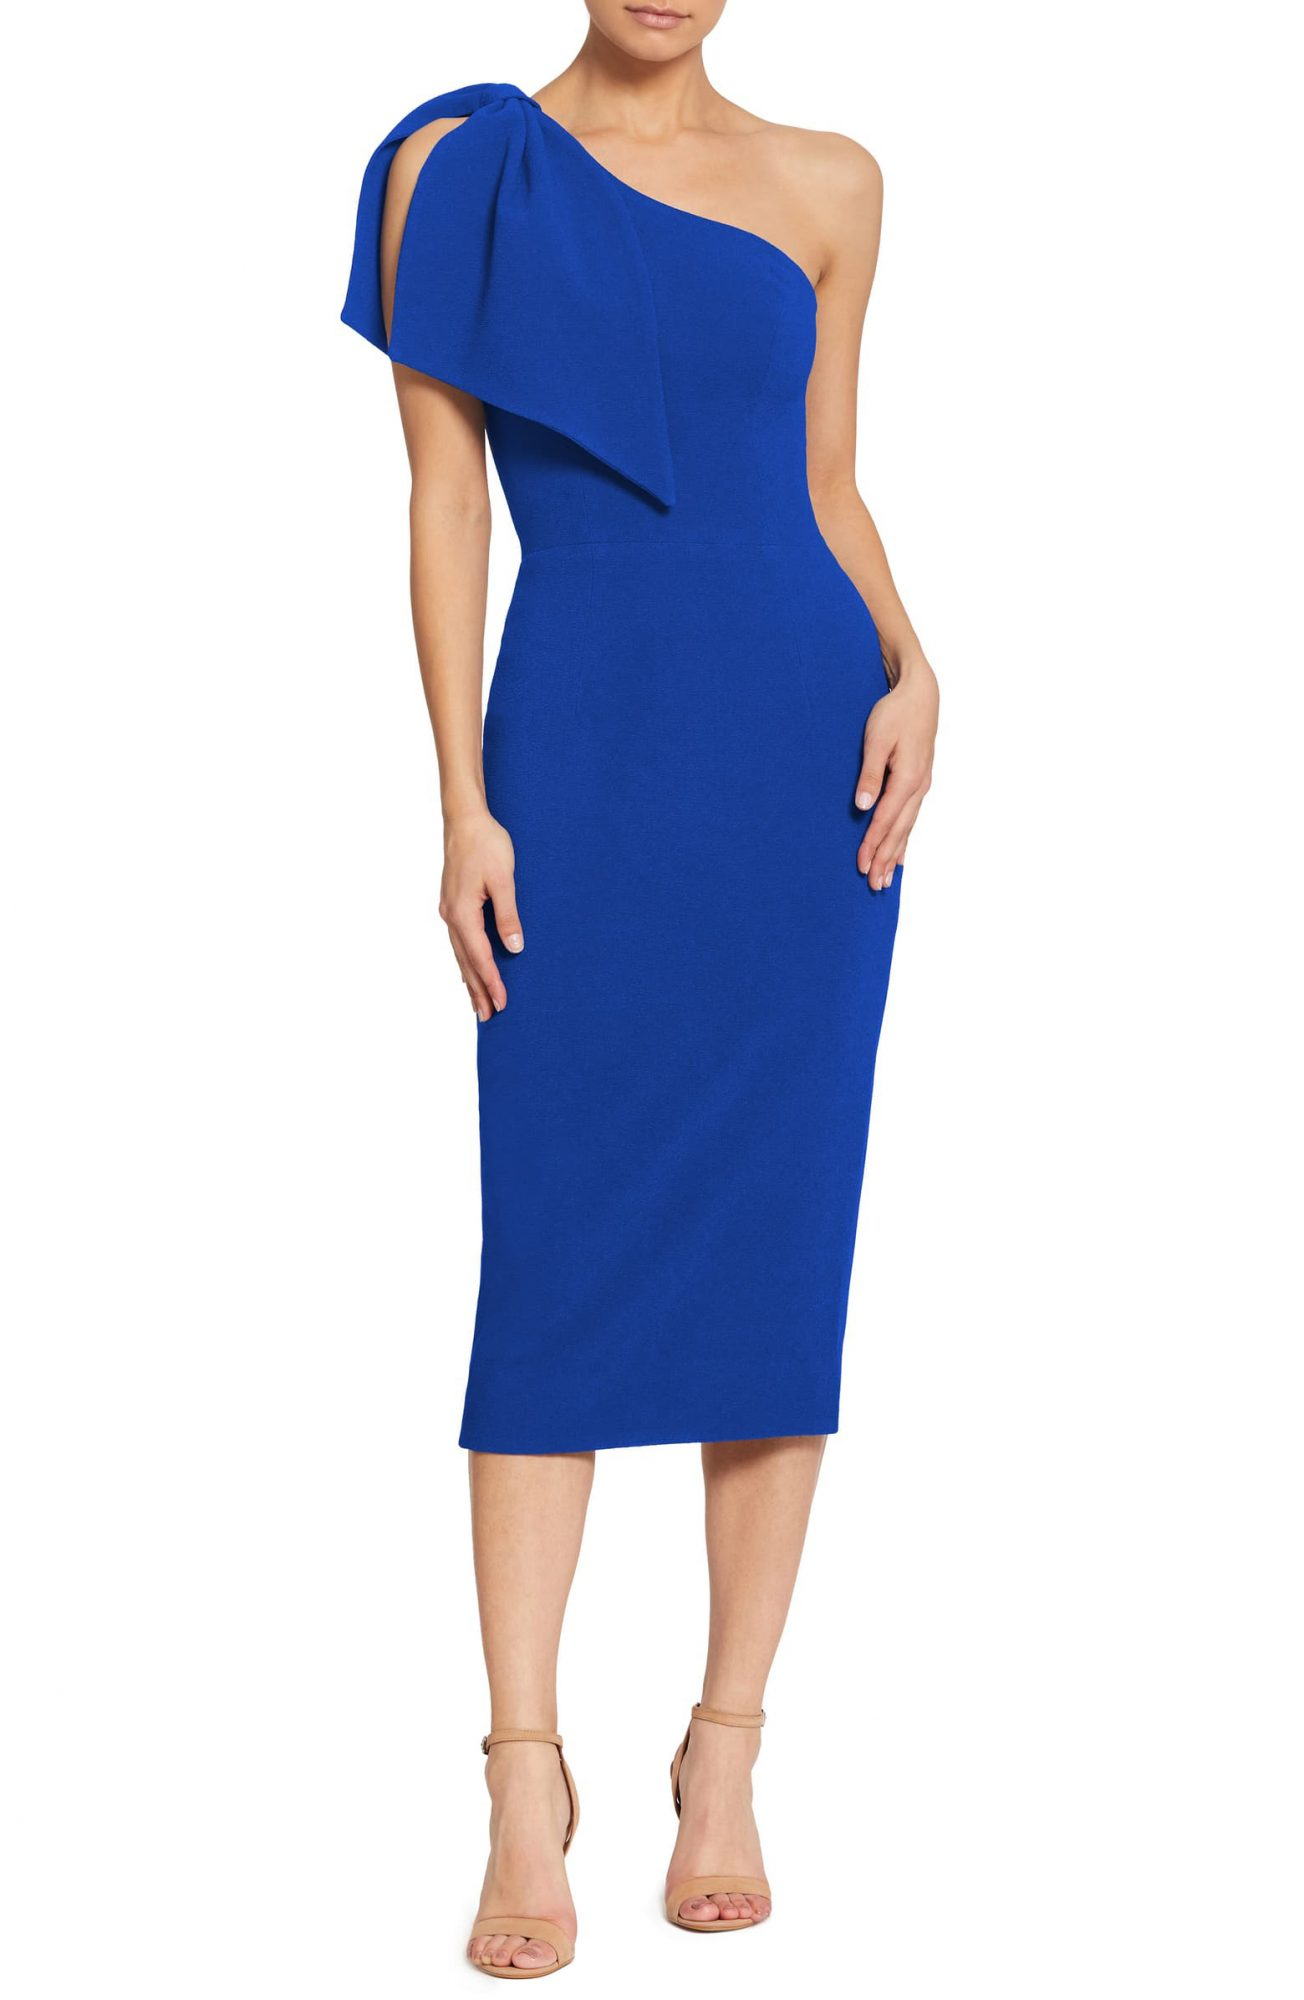 dress the population tiffany one-shoulder midid dress in electric blue